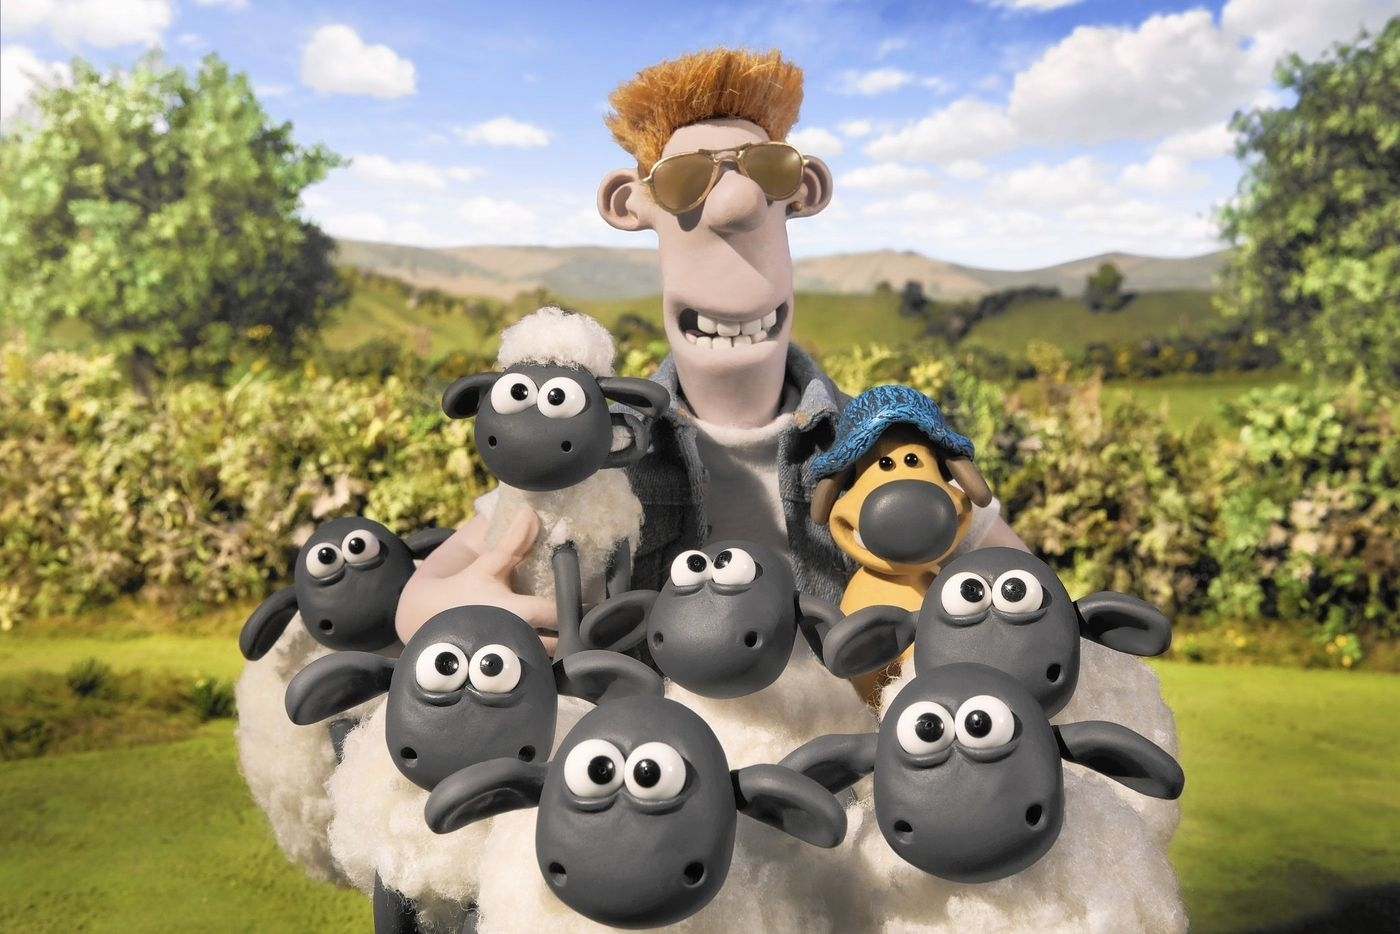 shaun the sheep' absurdly amusing for all ages